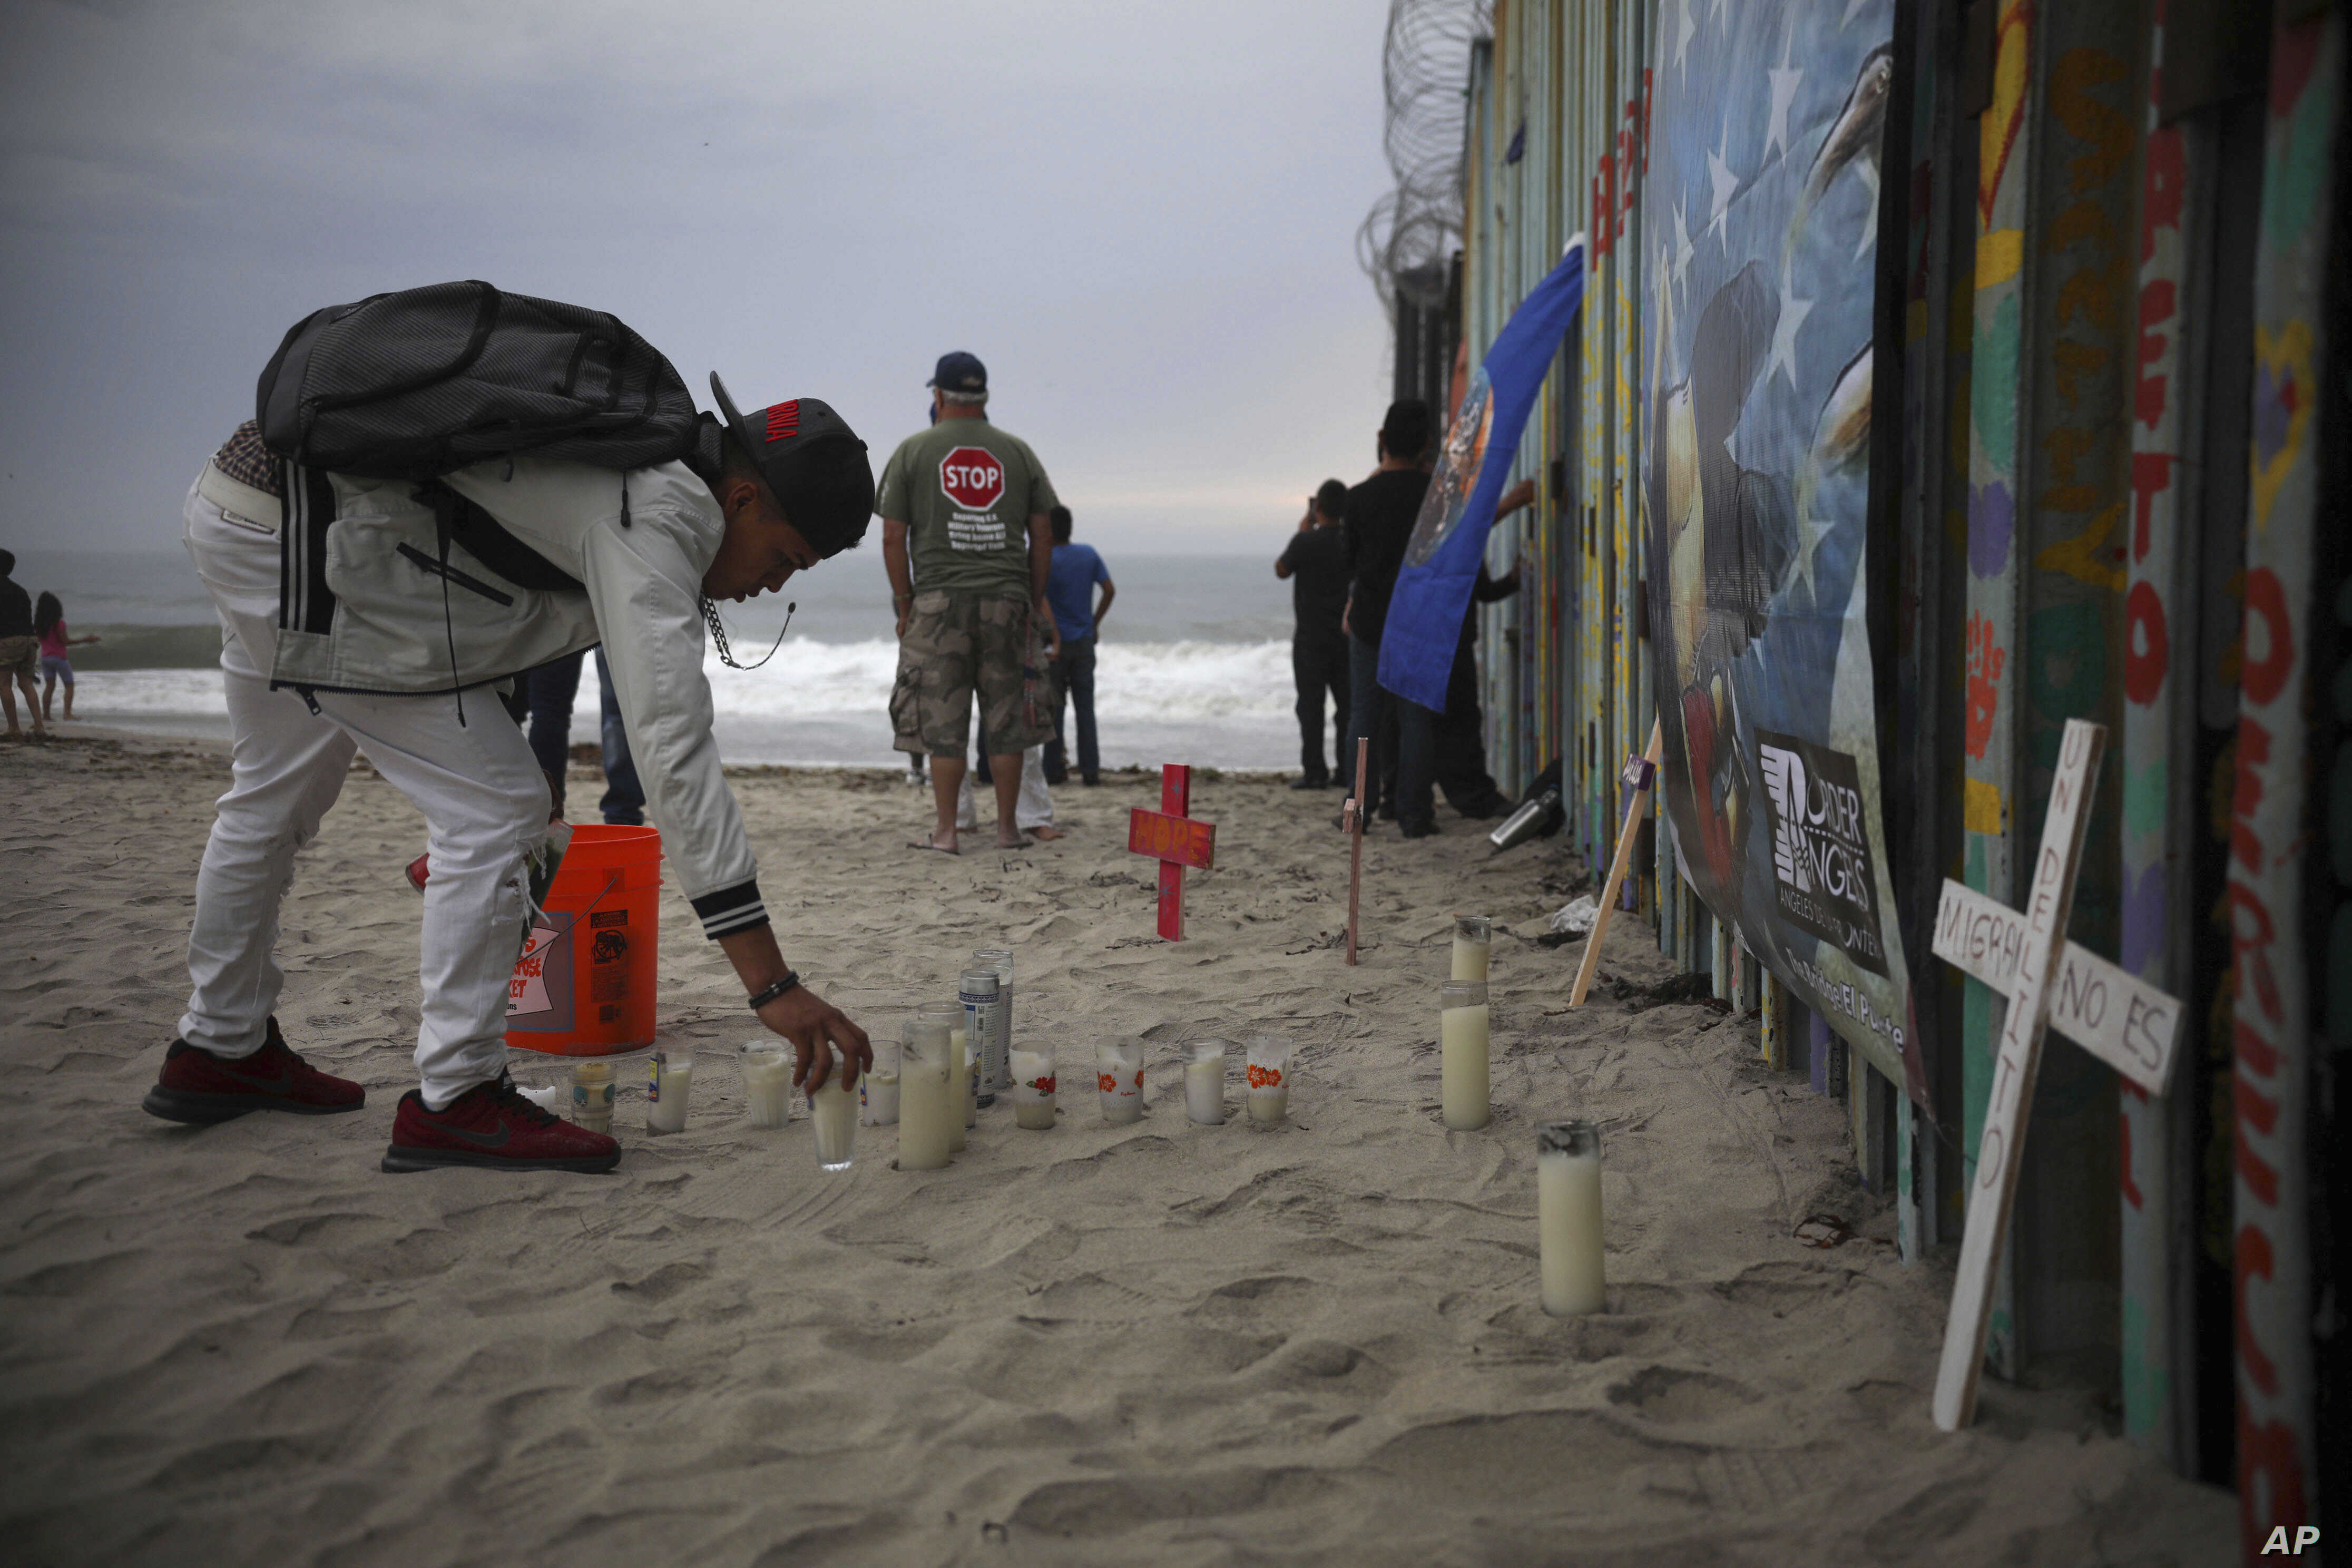 Candles are placed next to the border fence that separates Mexico from the United States, in memory of migrants who have died during their journey toward the U.S., in Tijuana, Mexico, June 29, 2019.